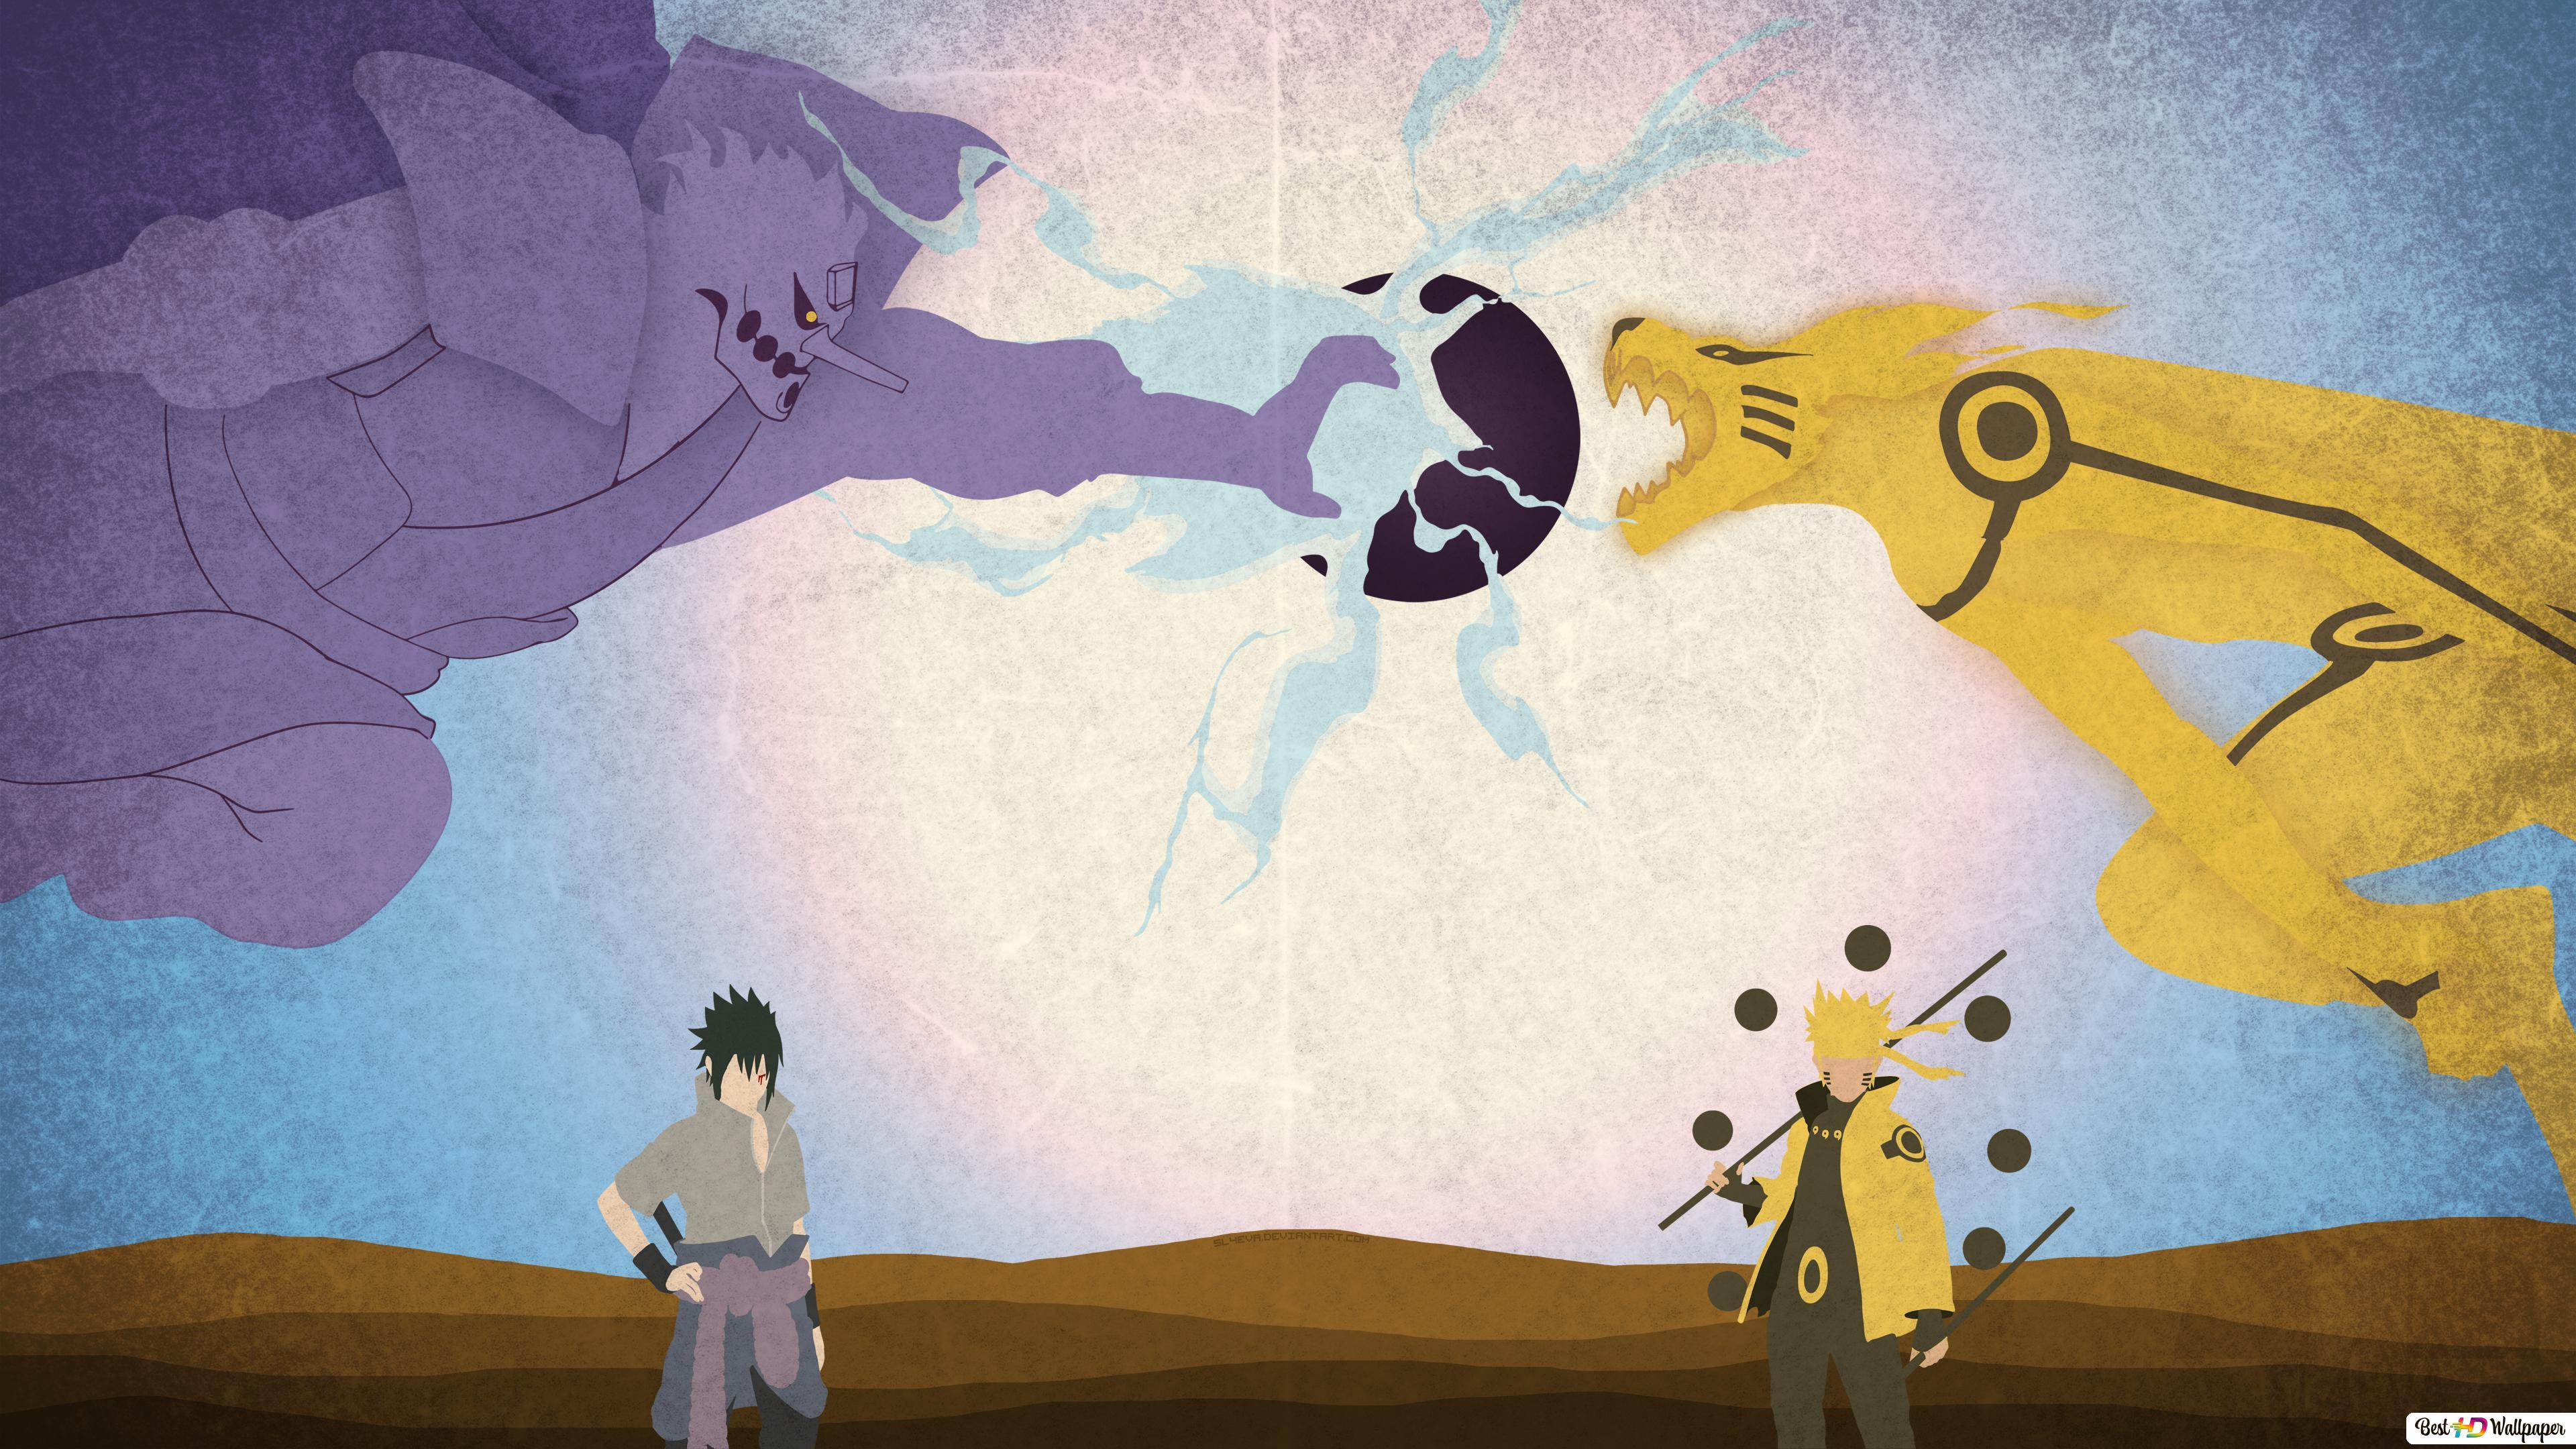 Naruto Vs Sasuke Hd Wallpaper Download